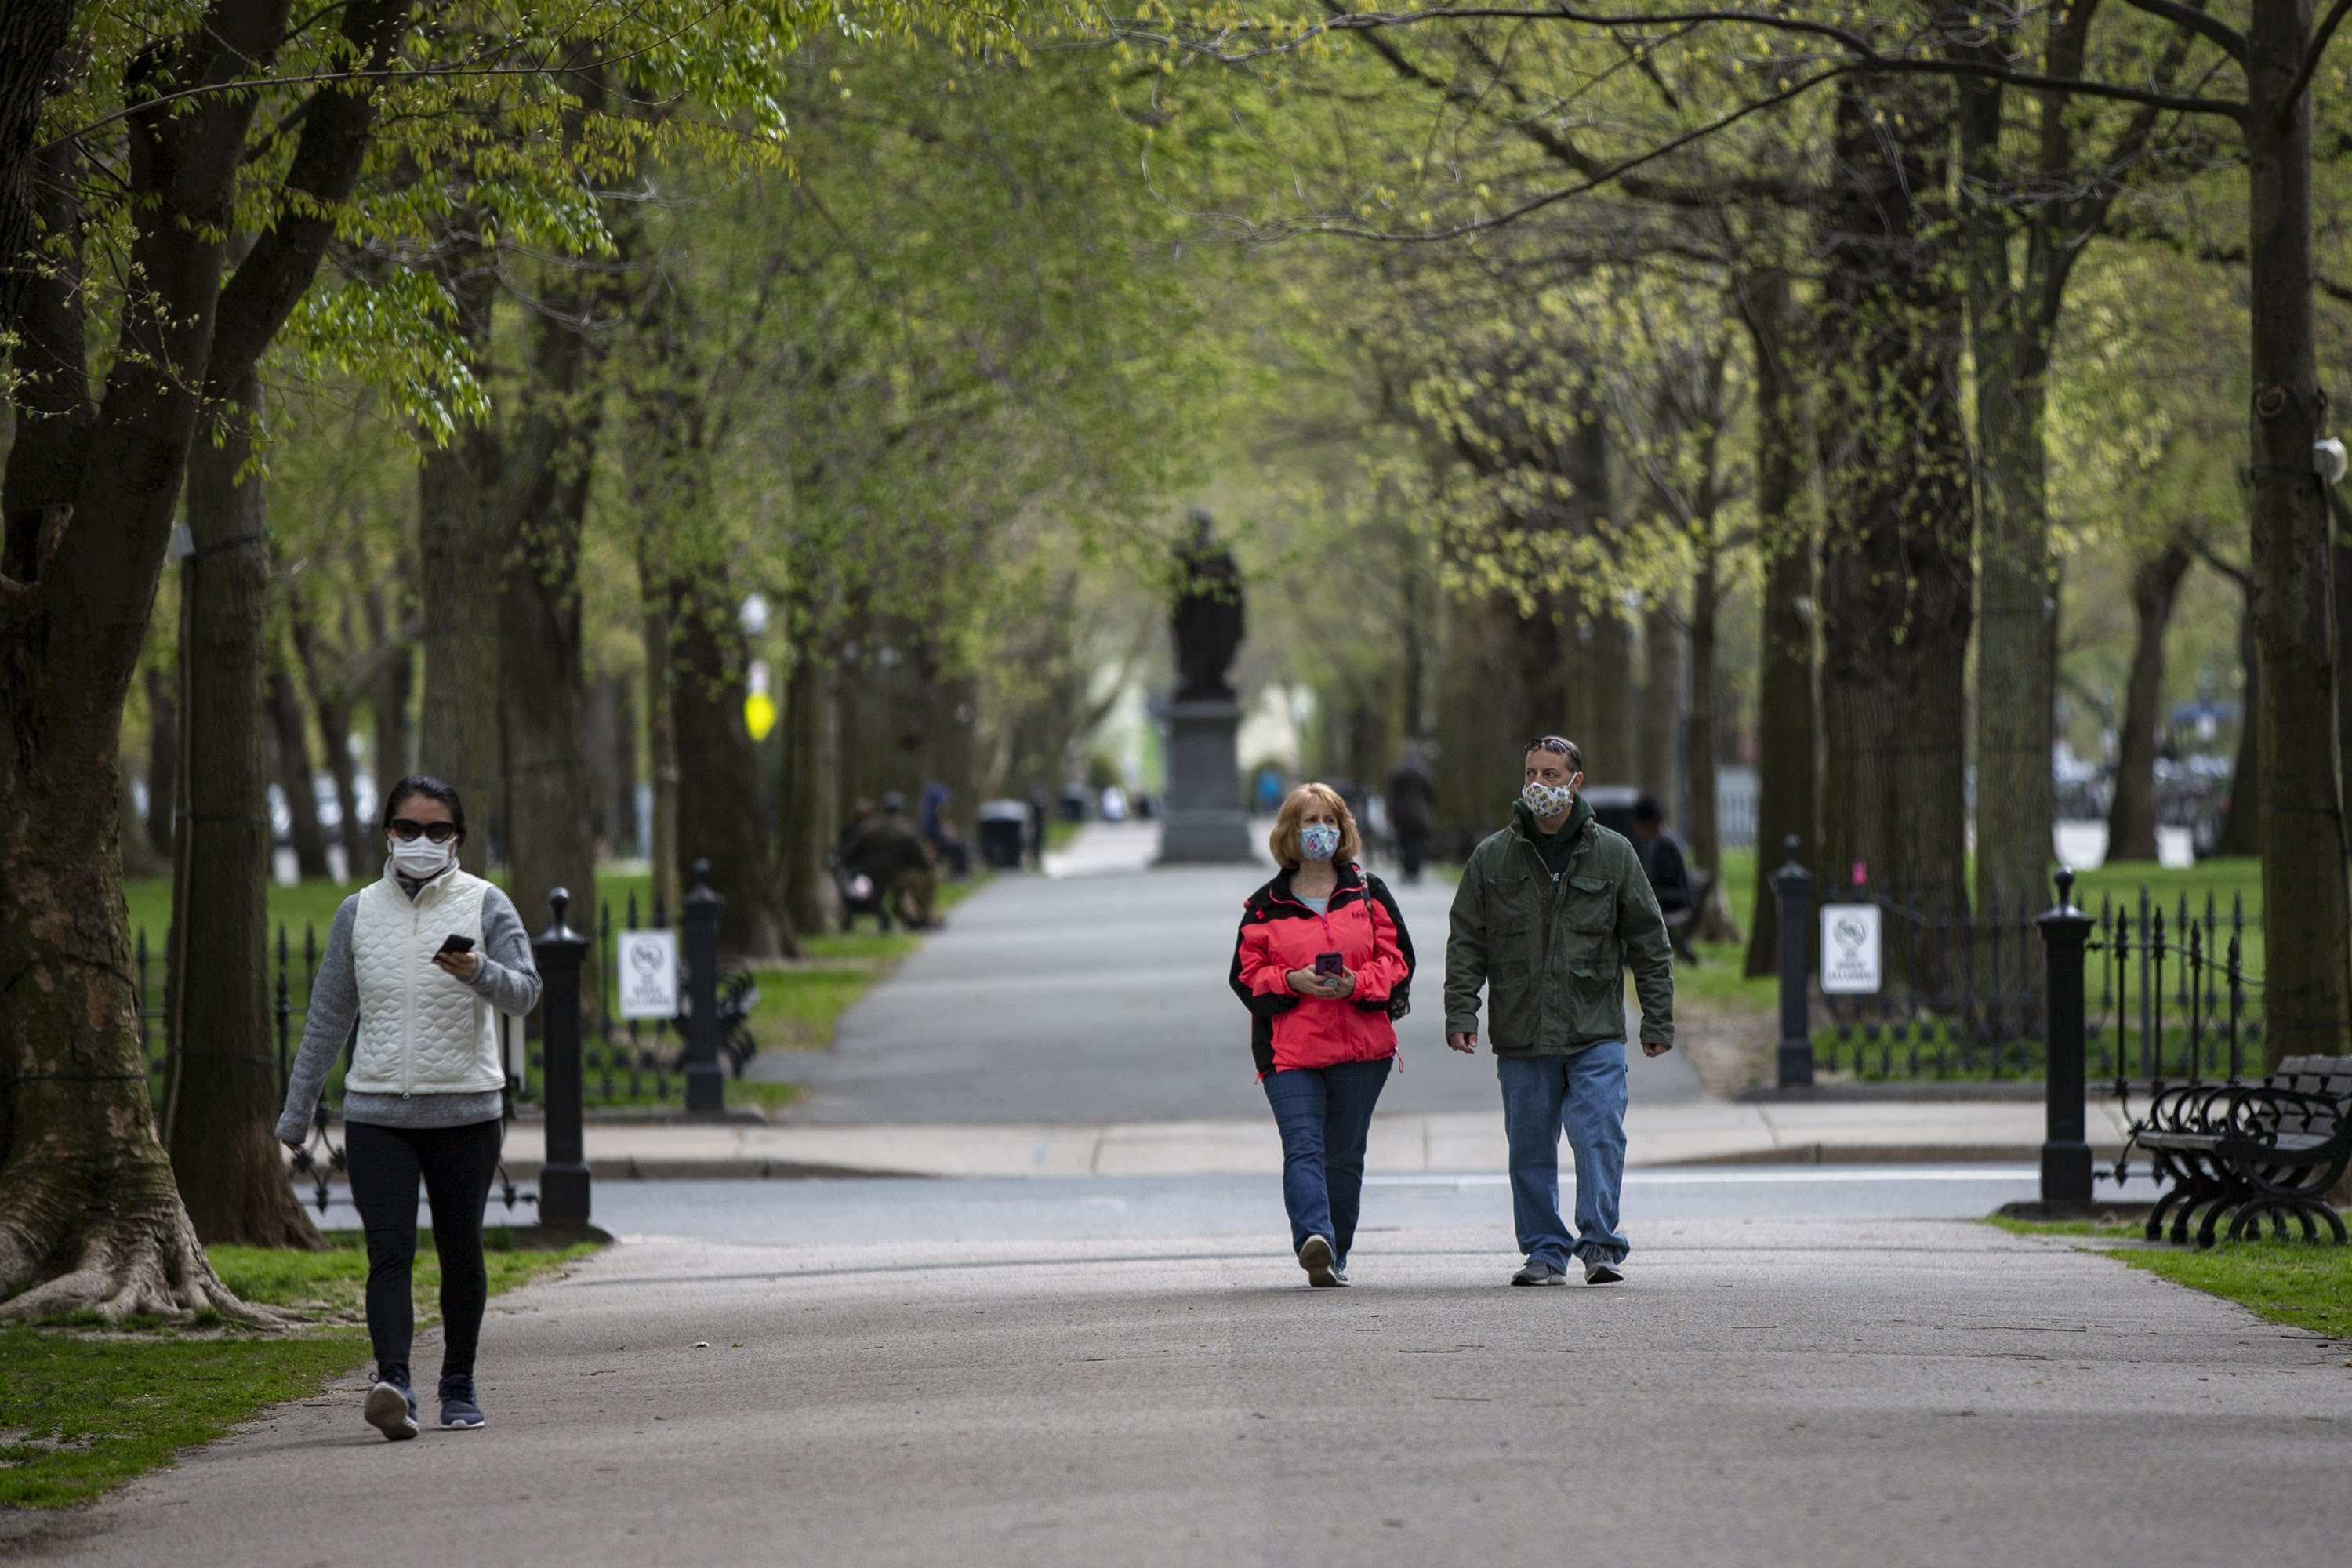 People walk along the Commonwealth Mall on the first day masks are required to be worn in the state. (Jesse Costa/WBUR)